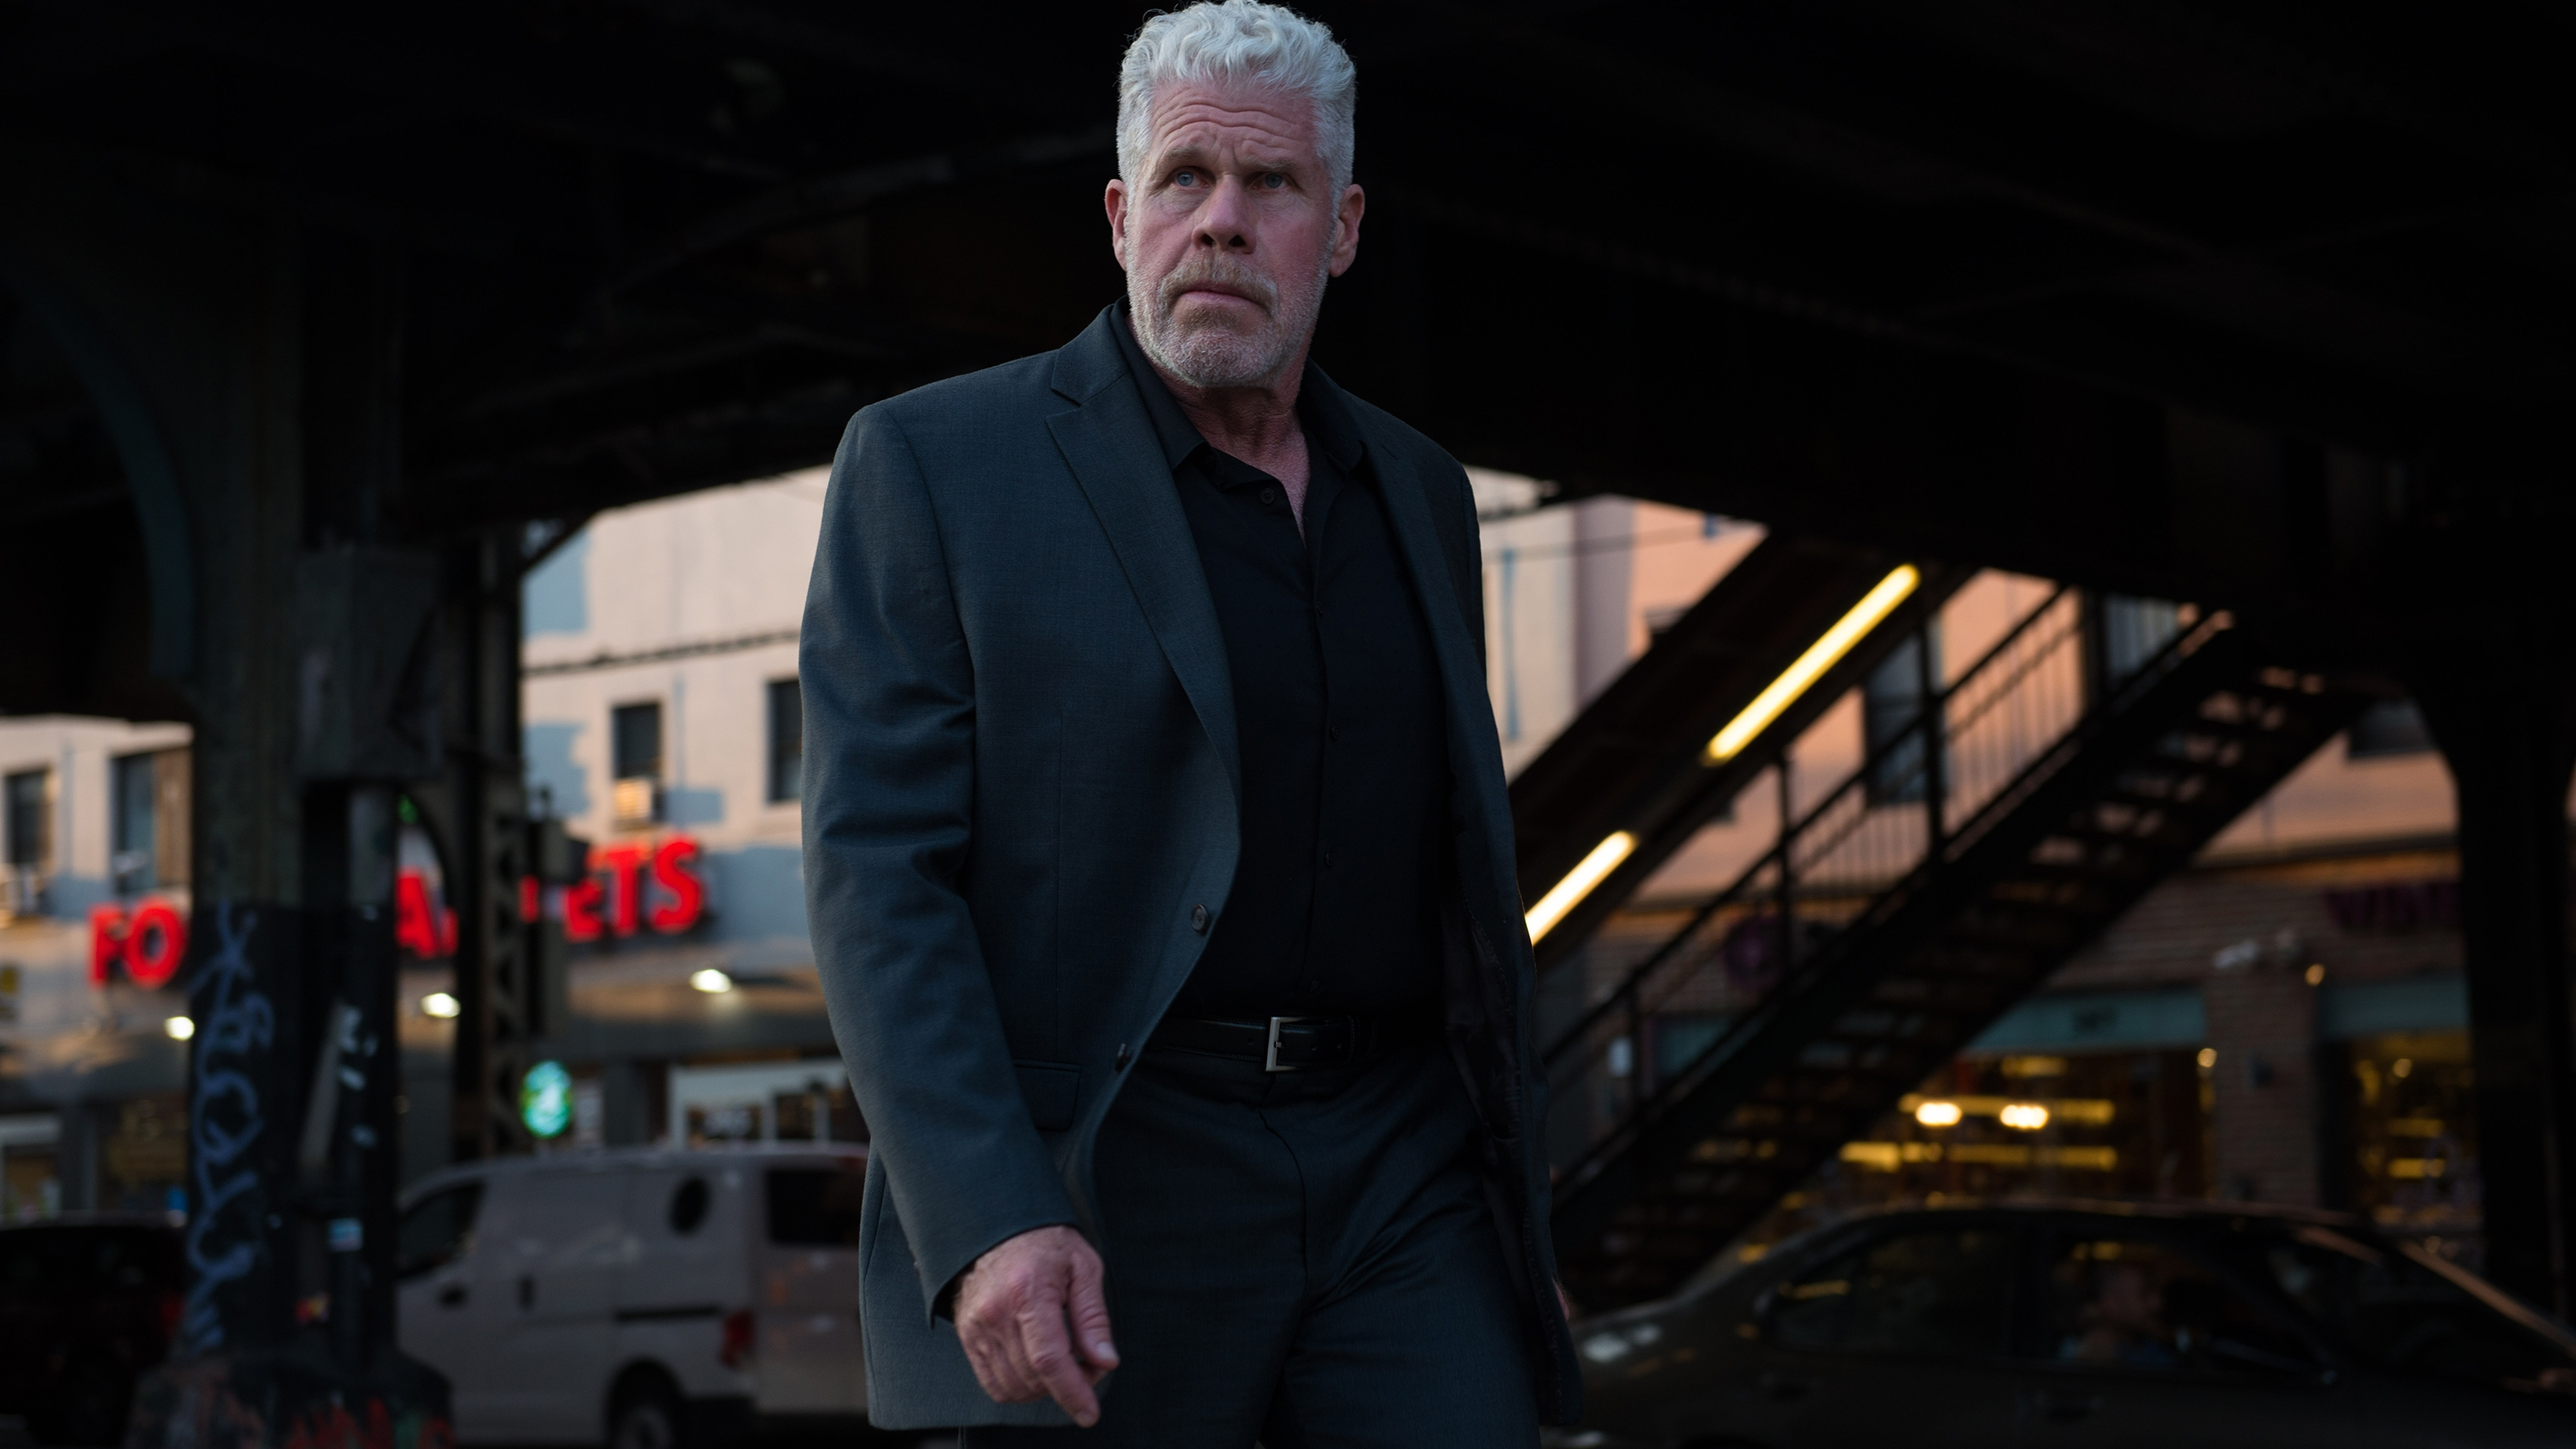 Ron Perlmans instincts were right about Asher